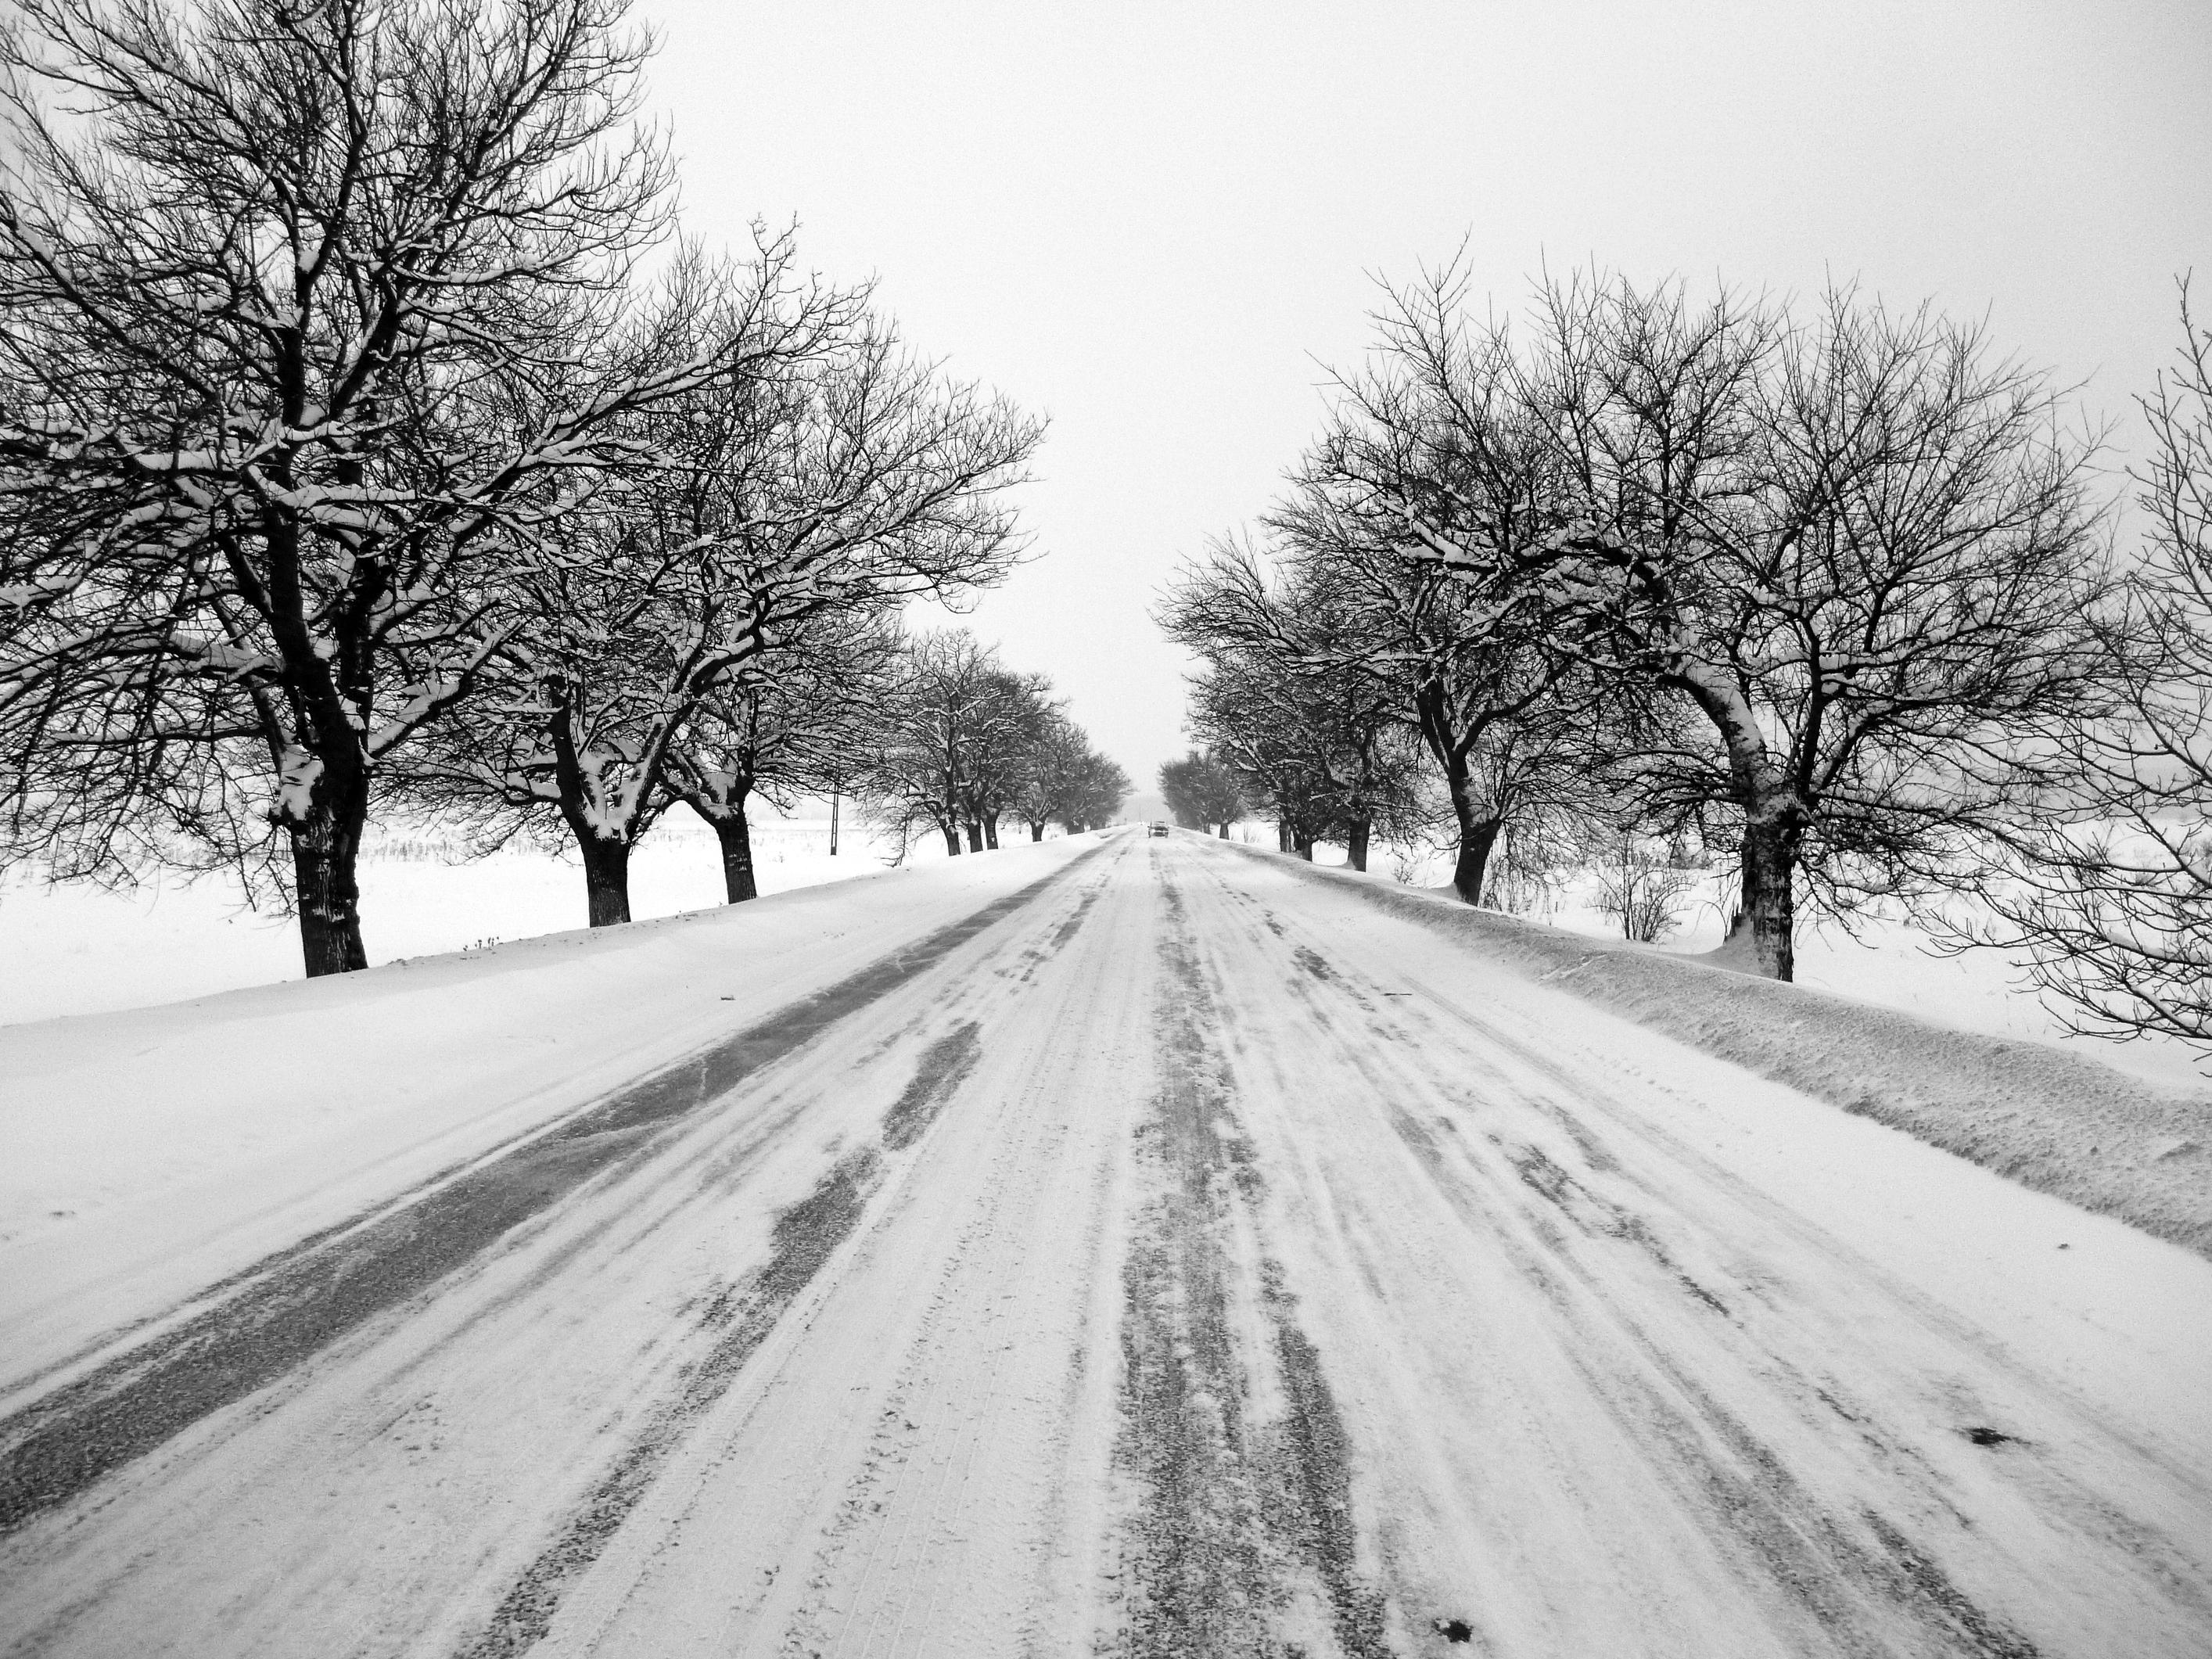 White Road by Brebenel-Silviu